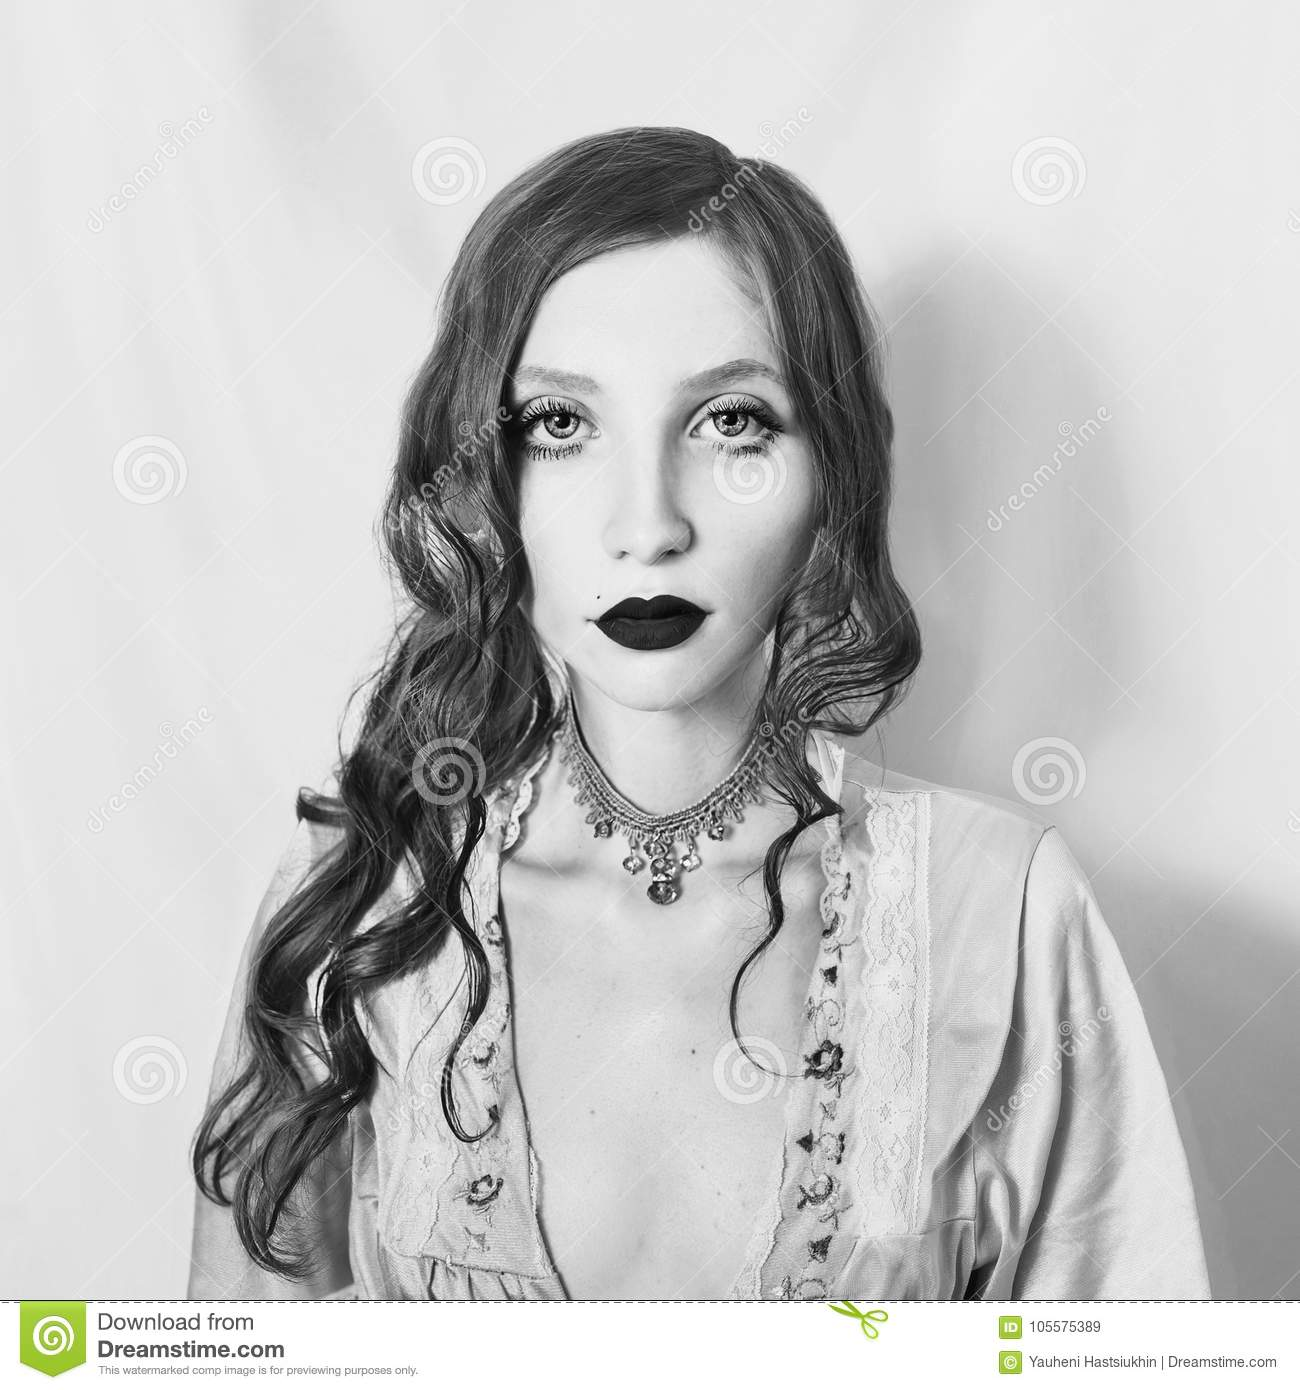 Artistic black and white photography unusual appearance stock image